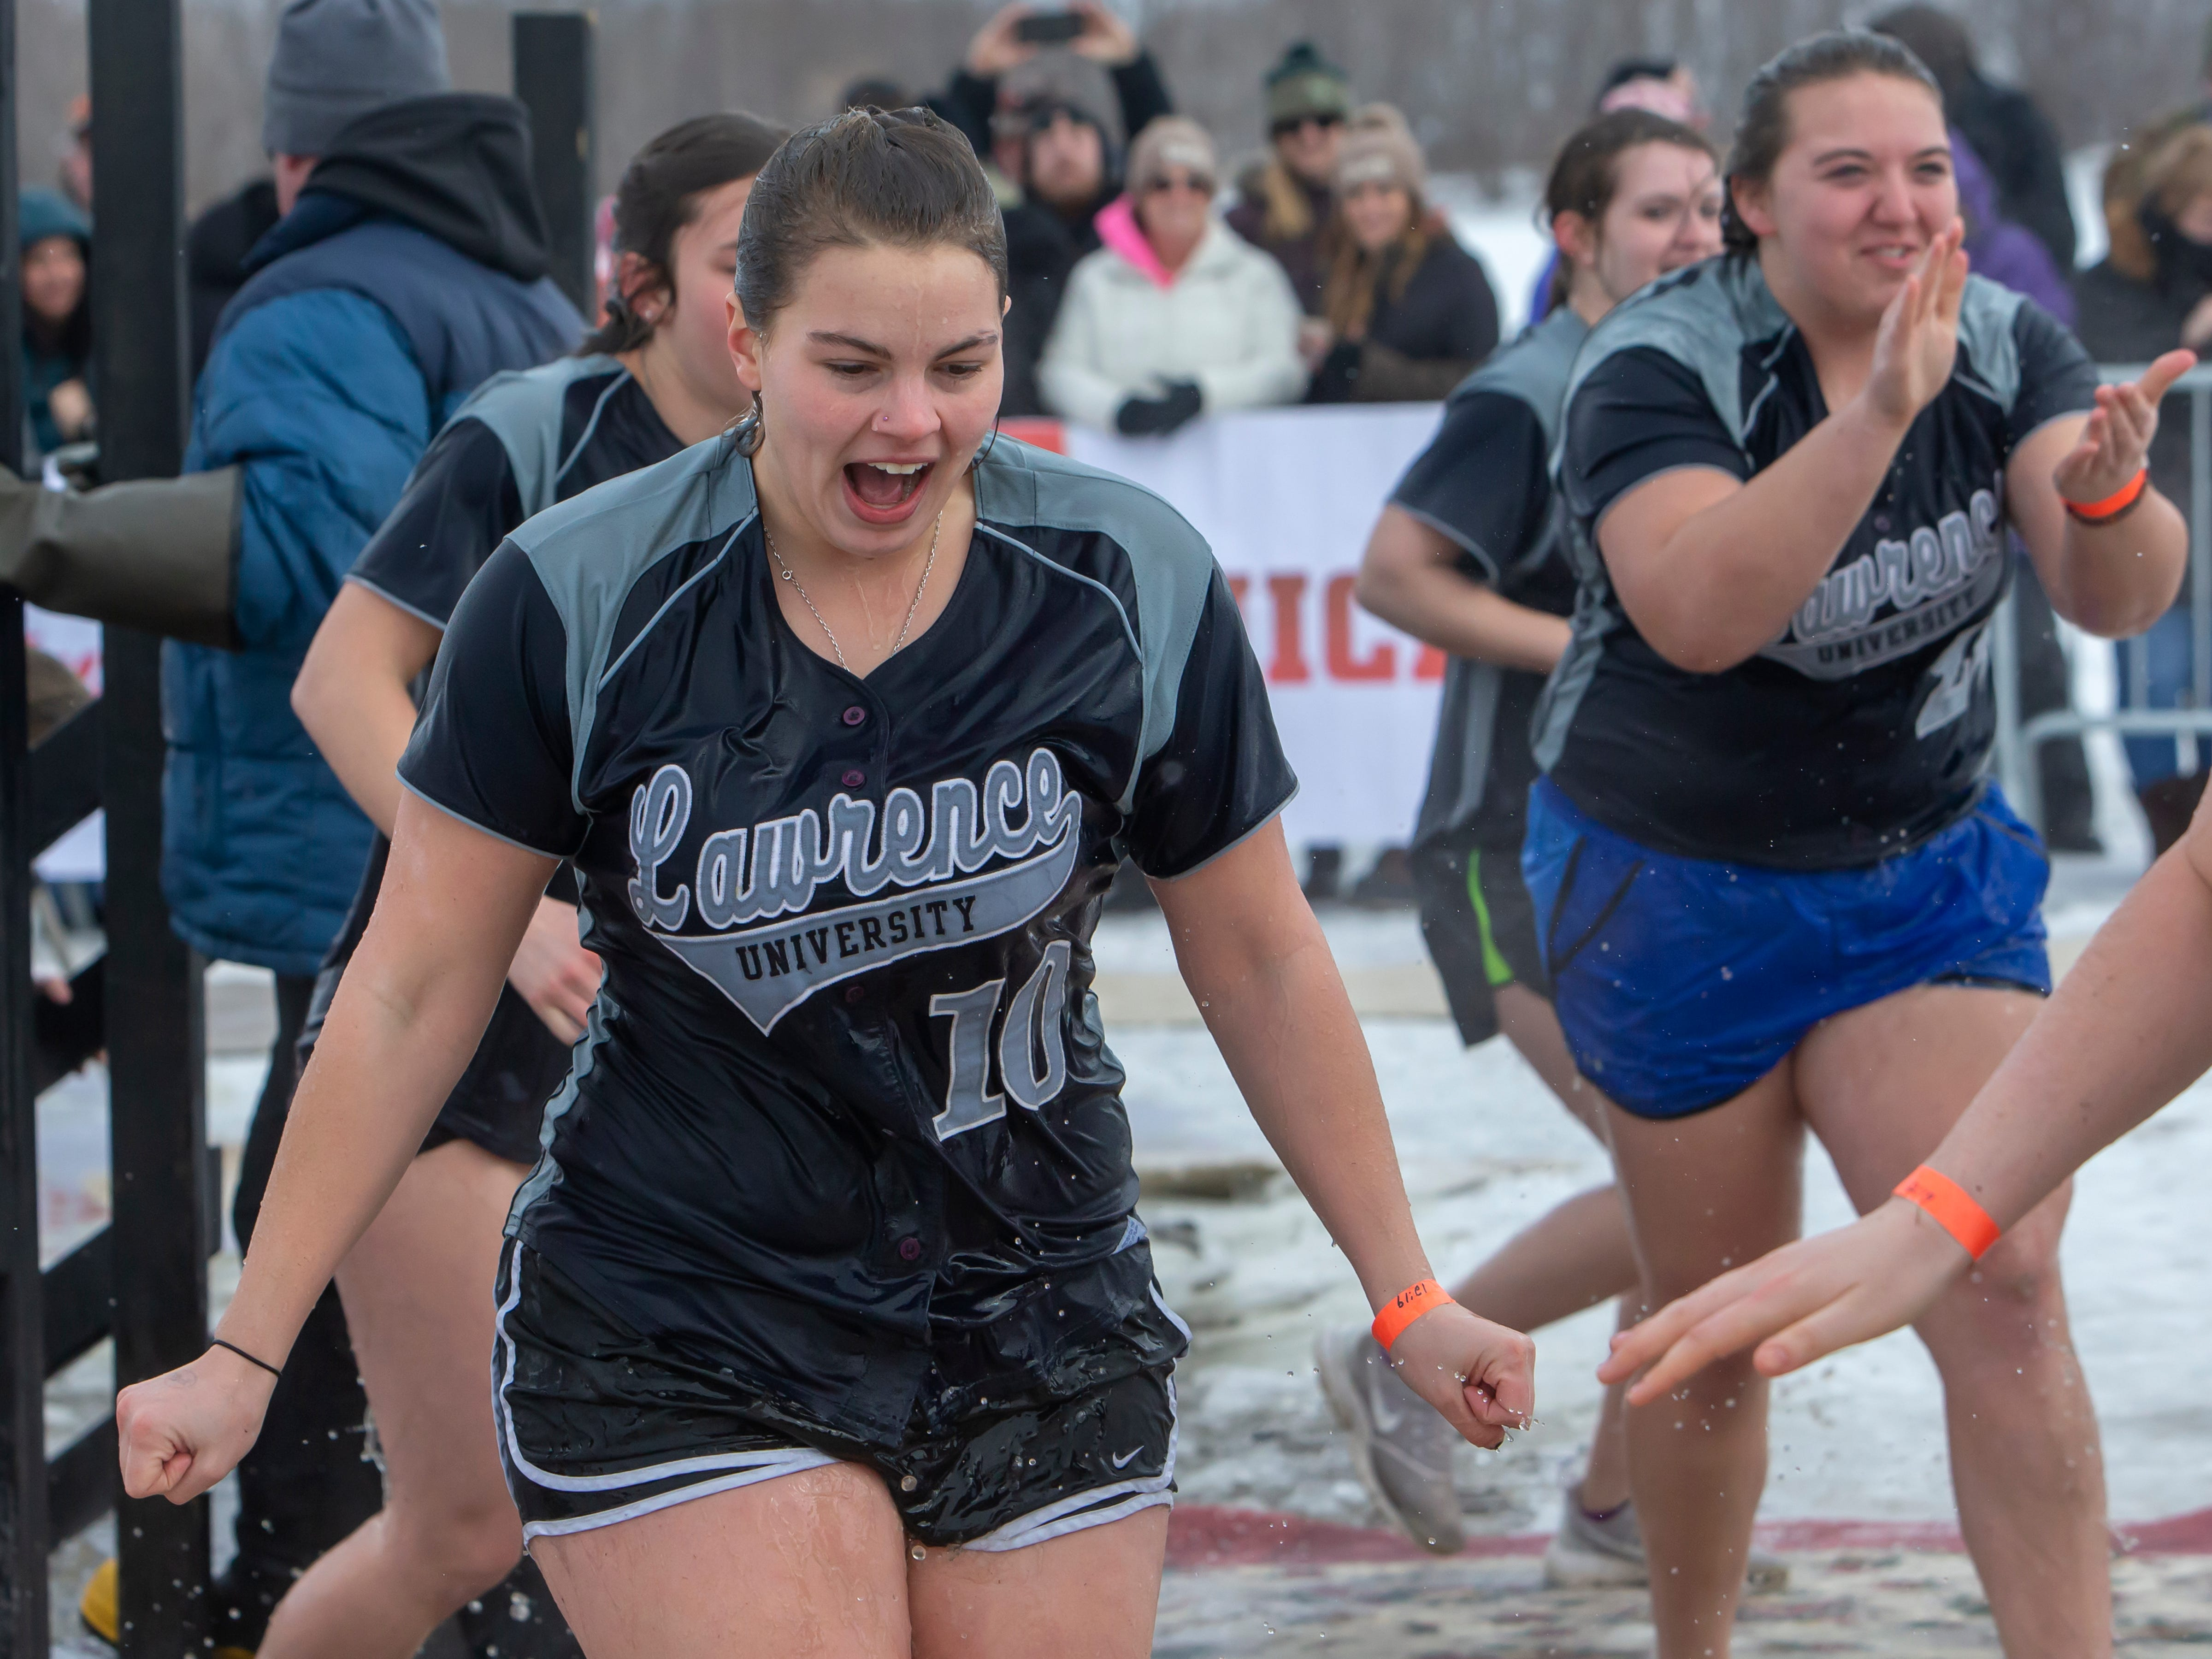 Lawrence University softball team takes the plunge during the Special Olympics Wisconsin Polar Plunge in Oshkosh, Wis., on Saturday, February 16, 2019, at Miller's Bay in Menominee Park.